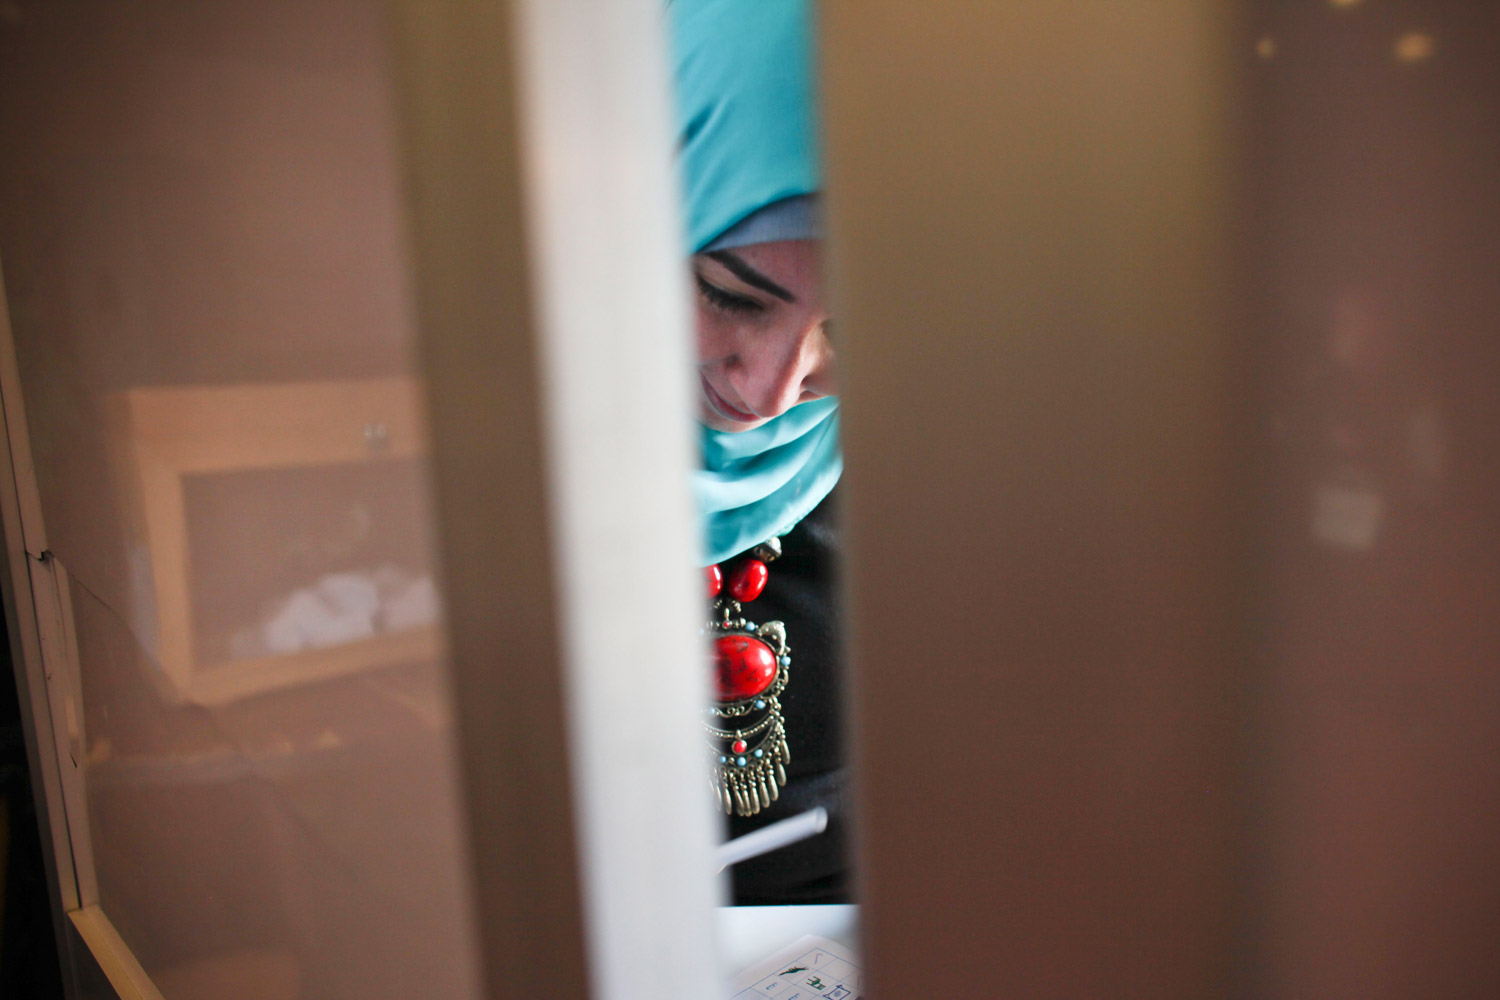 December 5, 2011. An Egyptian woman votes inside a polling station in Nasr City, a neighborhood of Cairo, Egypt.